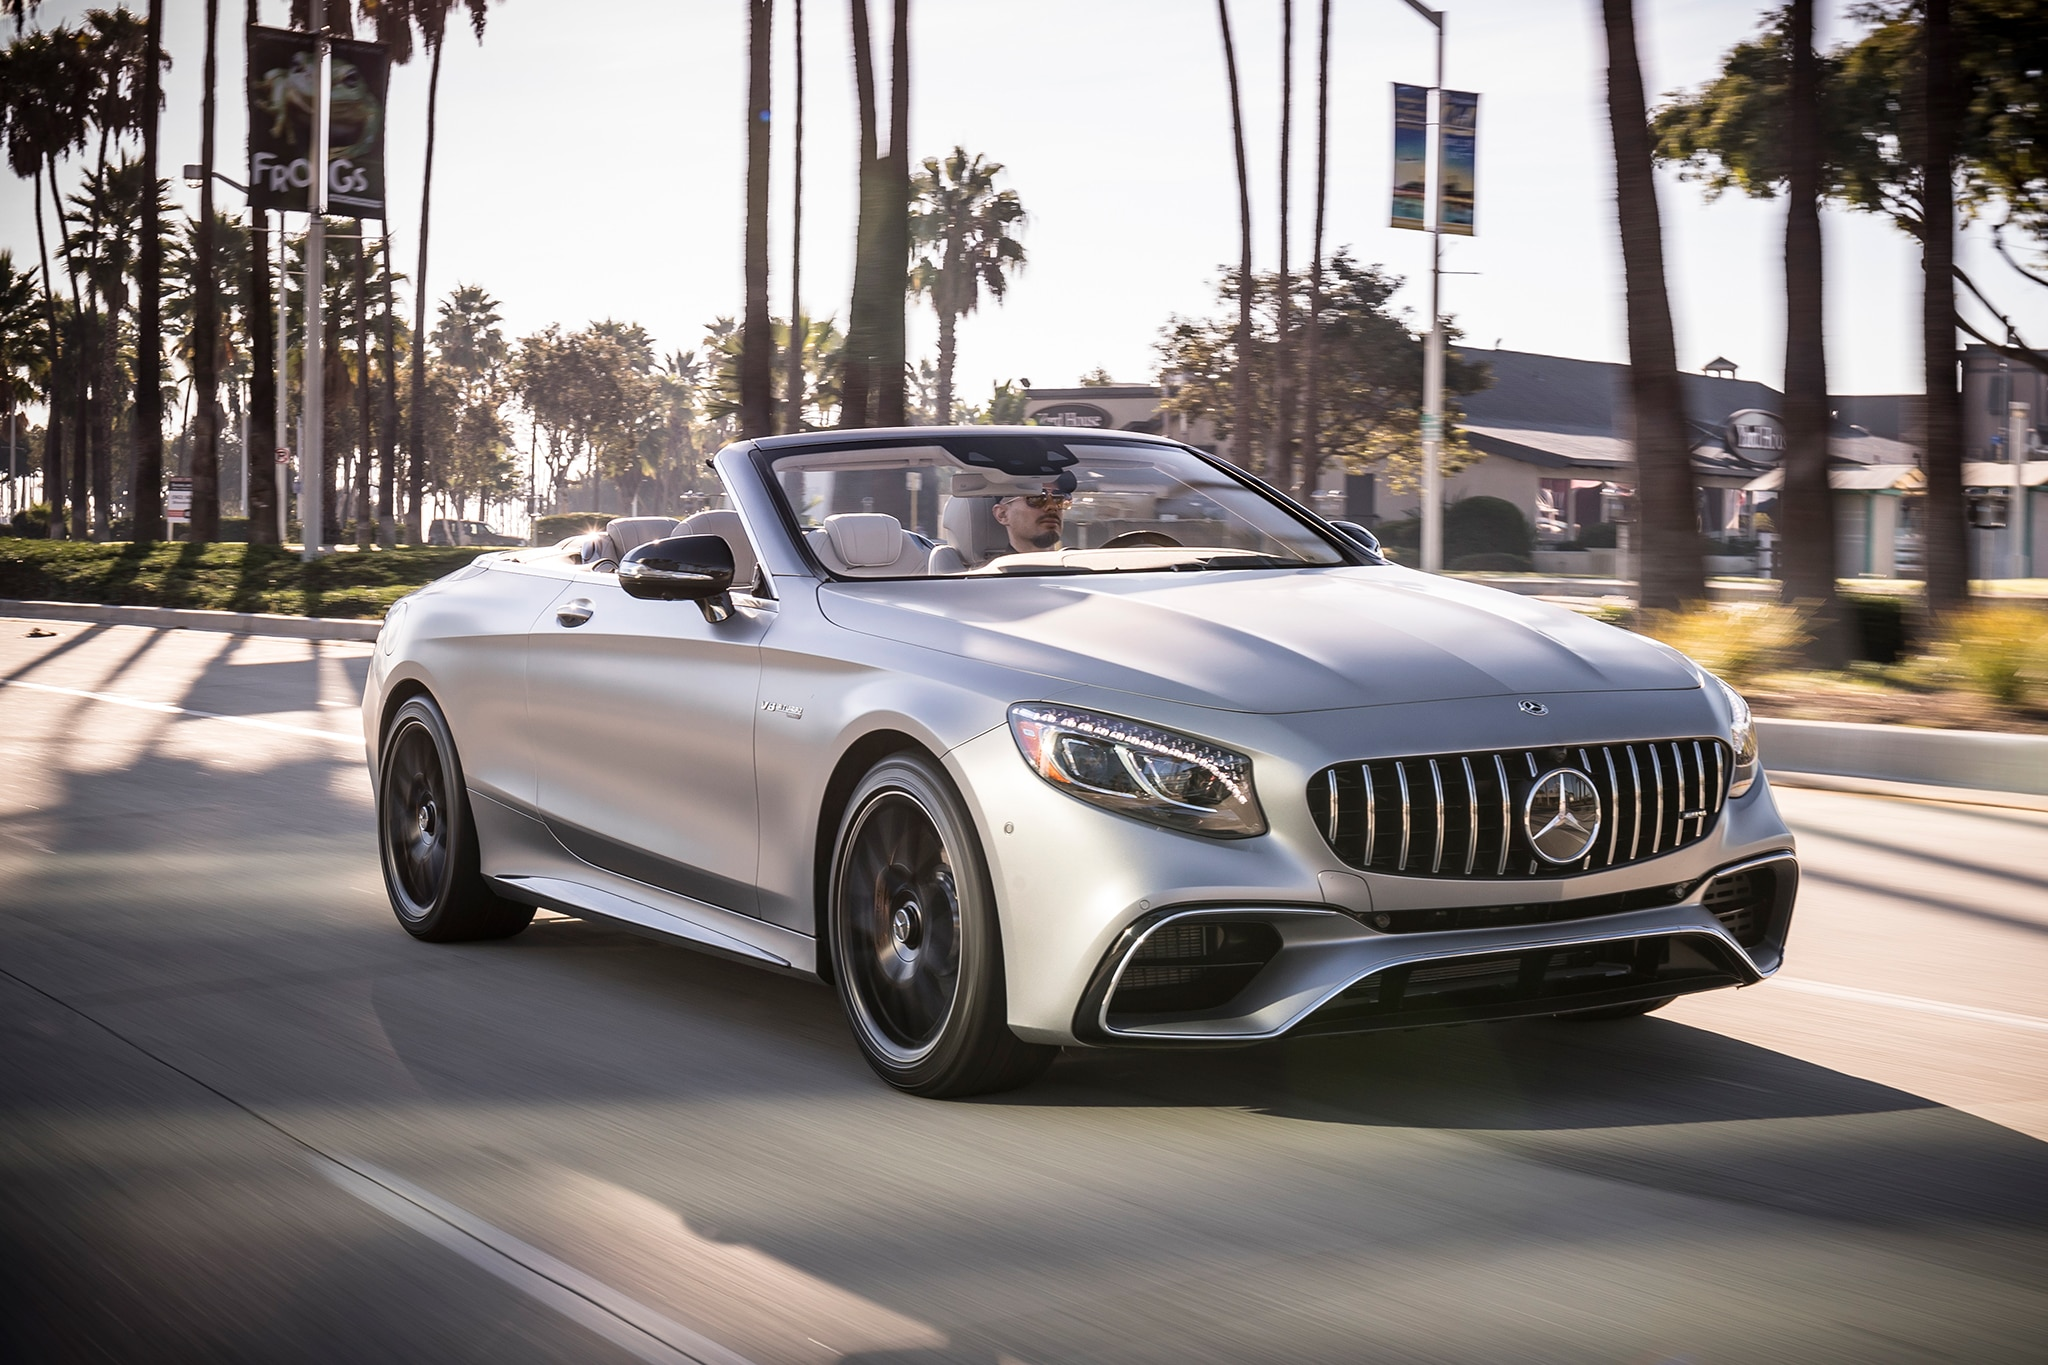 2018 Mercedes-AMG S-Class Coupe and Cabriolet First Drive Review ...